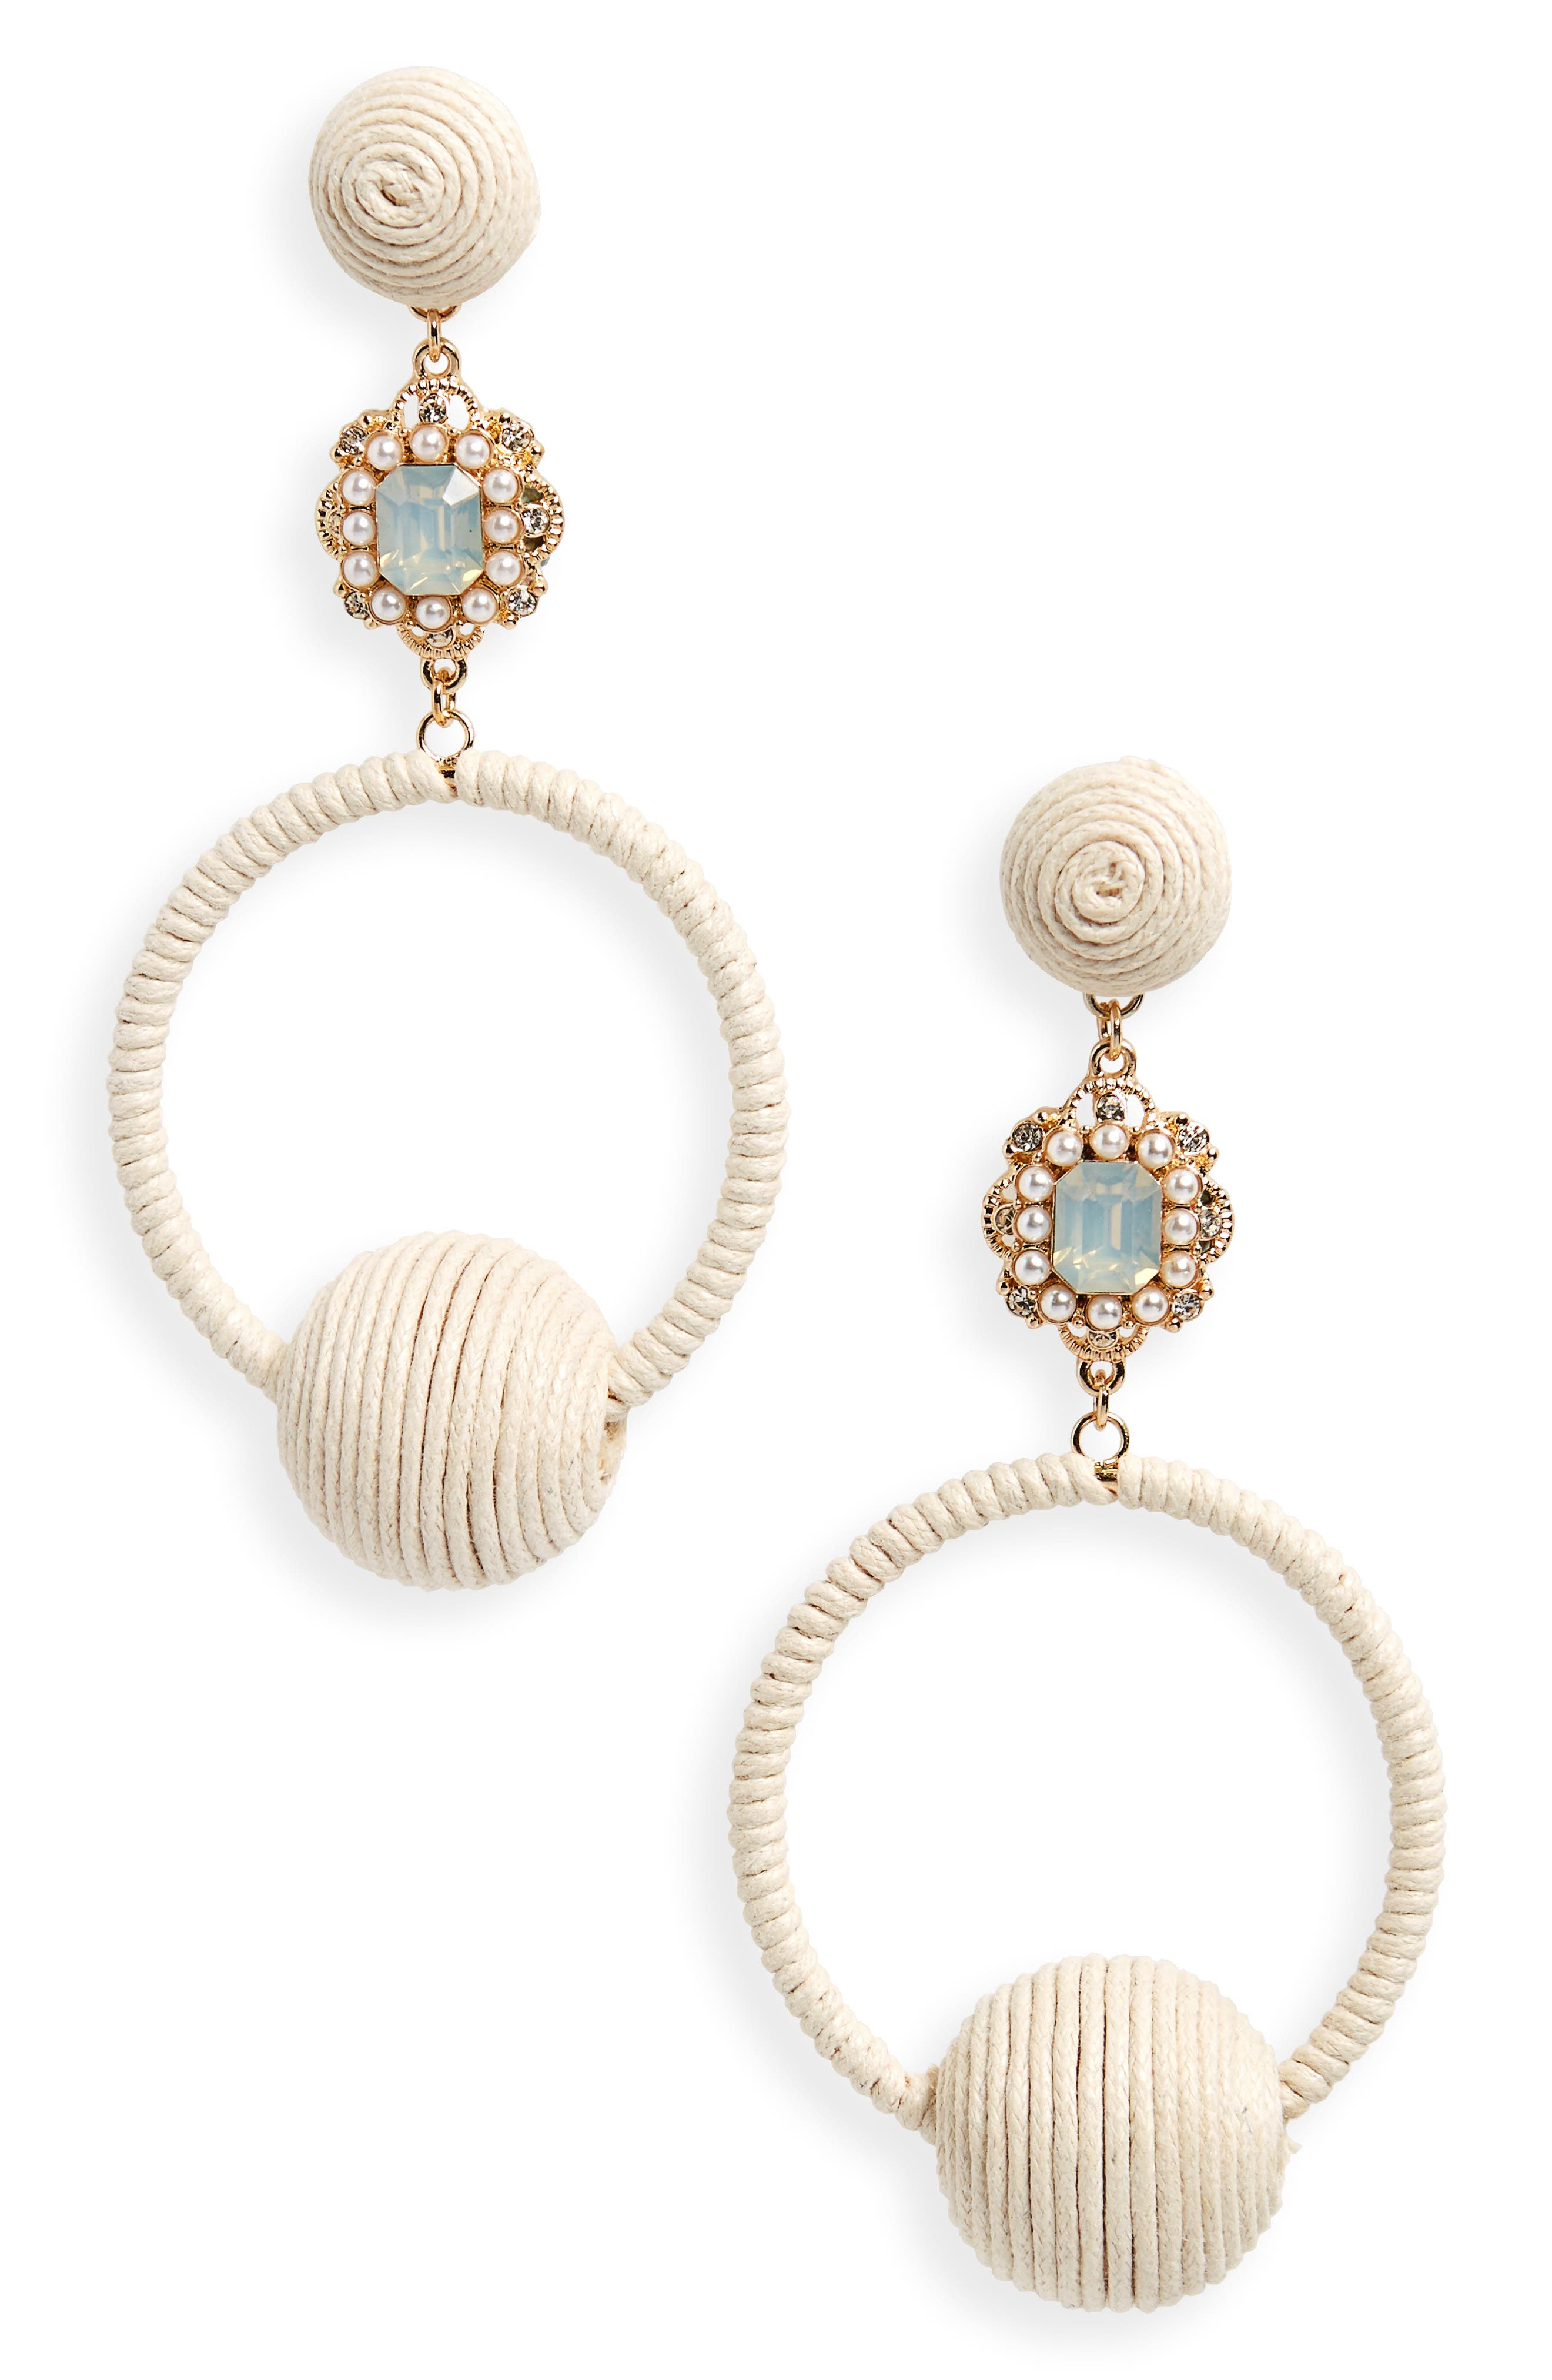 String Wrapped Crystal Hoop Earrings,                         Main,                         color, Gold/ Ivory